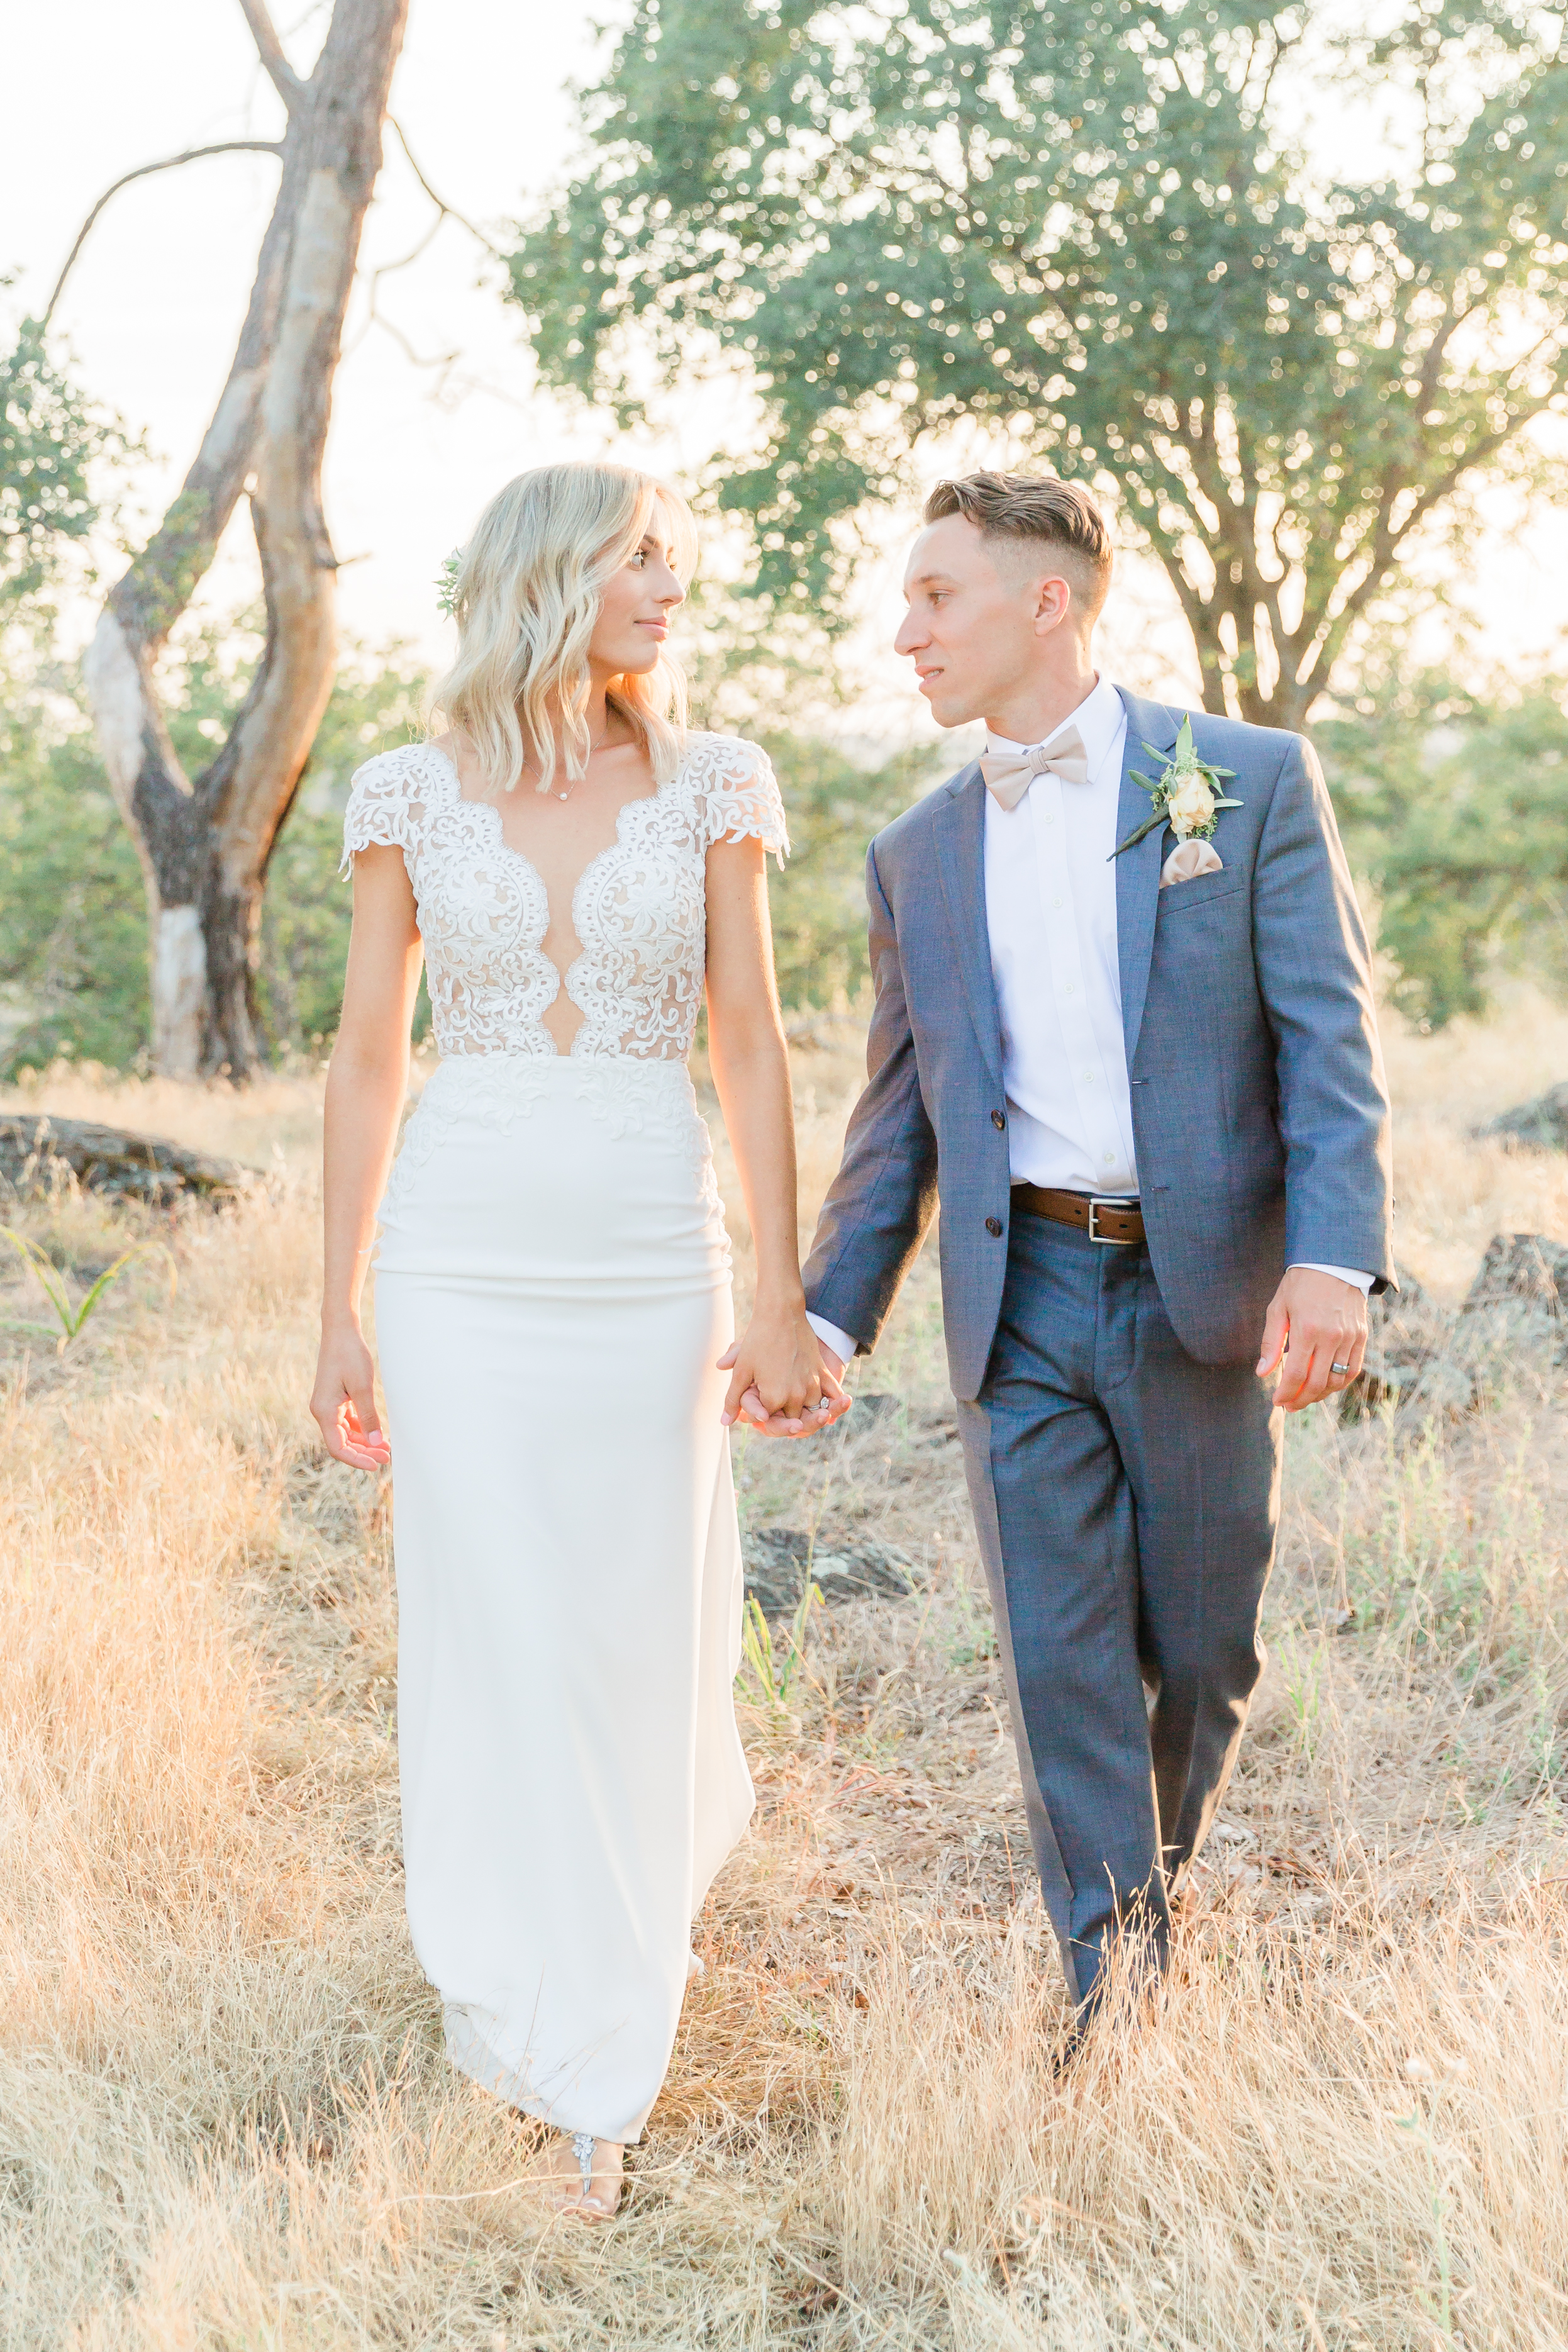 Kaitlynn and Colby - Married - Sneaks - Lauren Alisse Photography-97.jpg